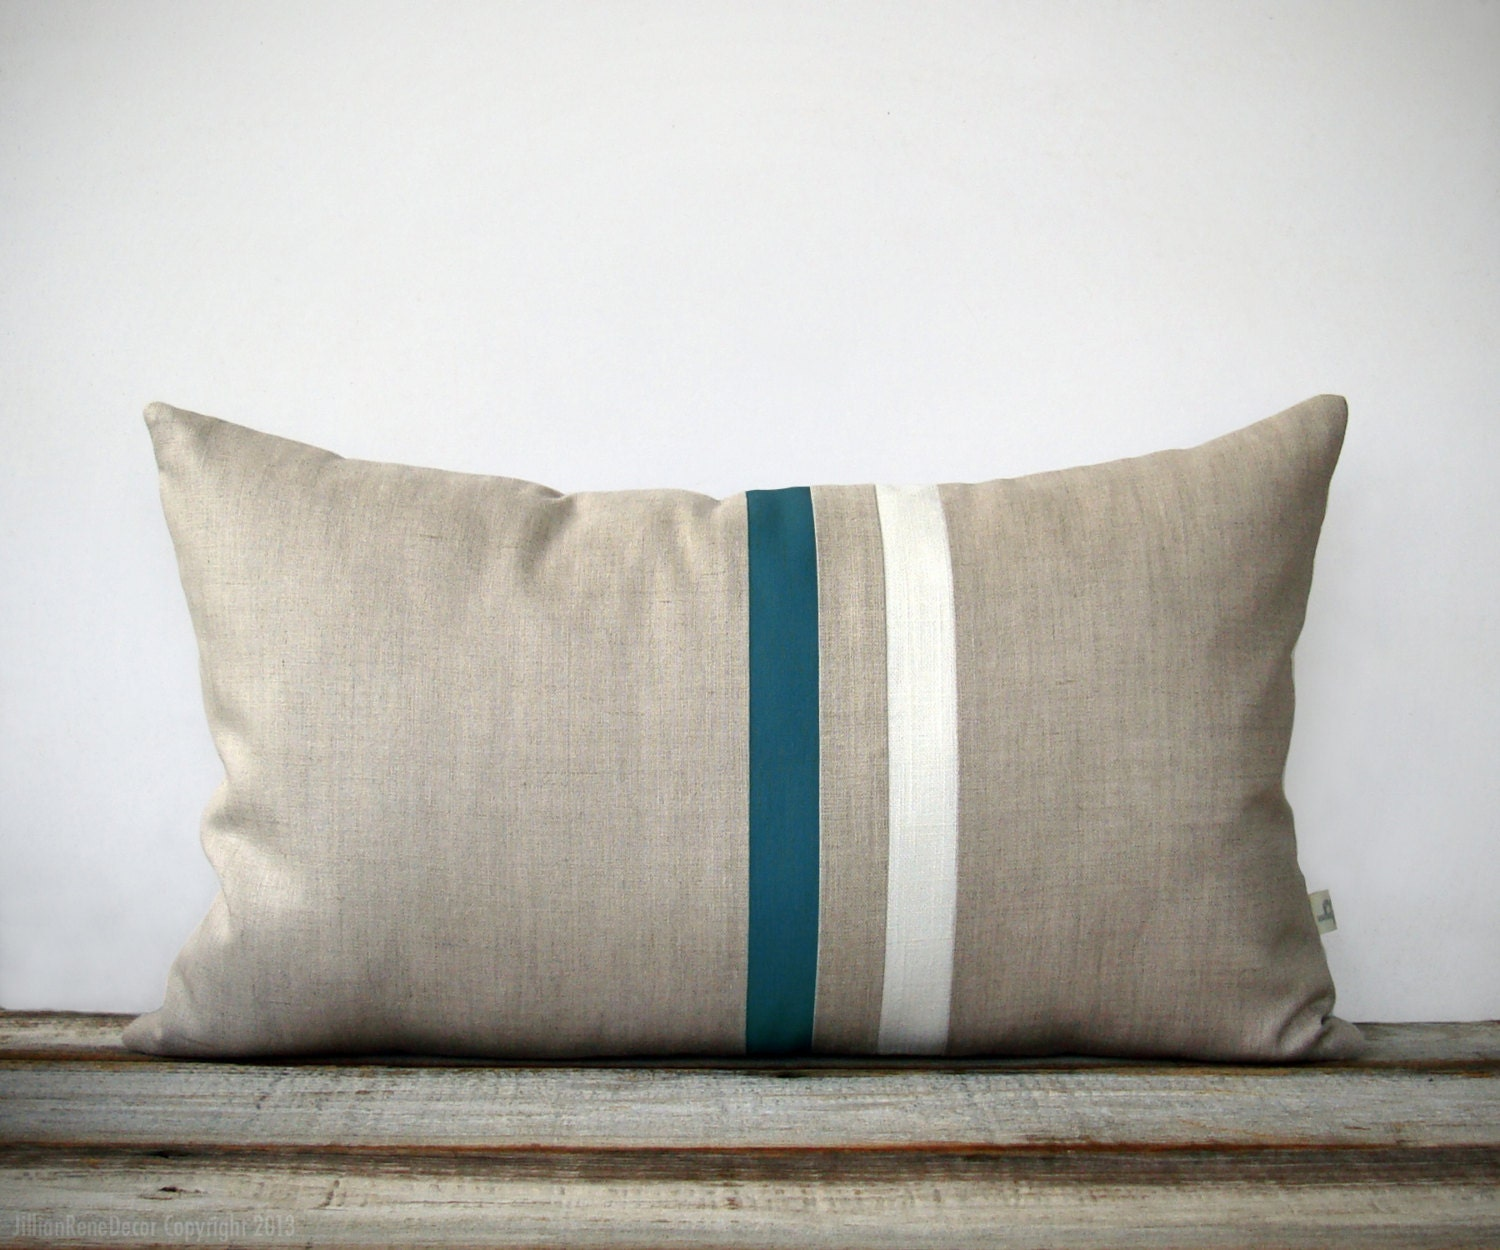 Decorative Black Lumbar Pillow : Teal and Cream Striped Lumbar Pillow 12x20 Modern Home Decor